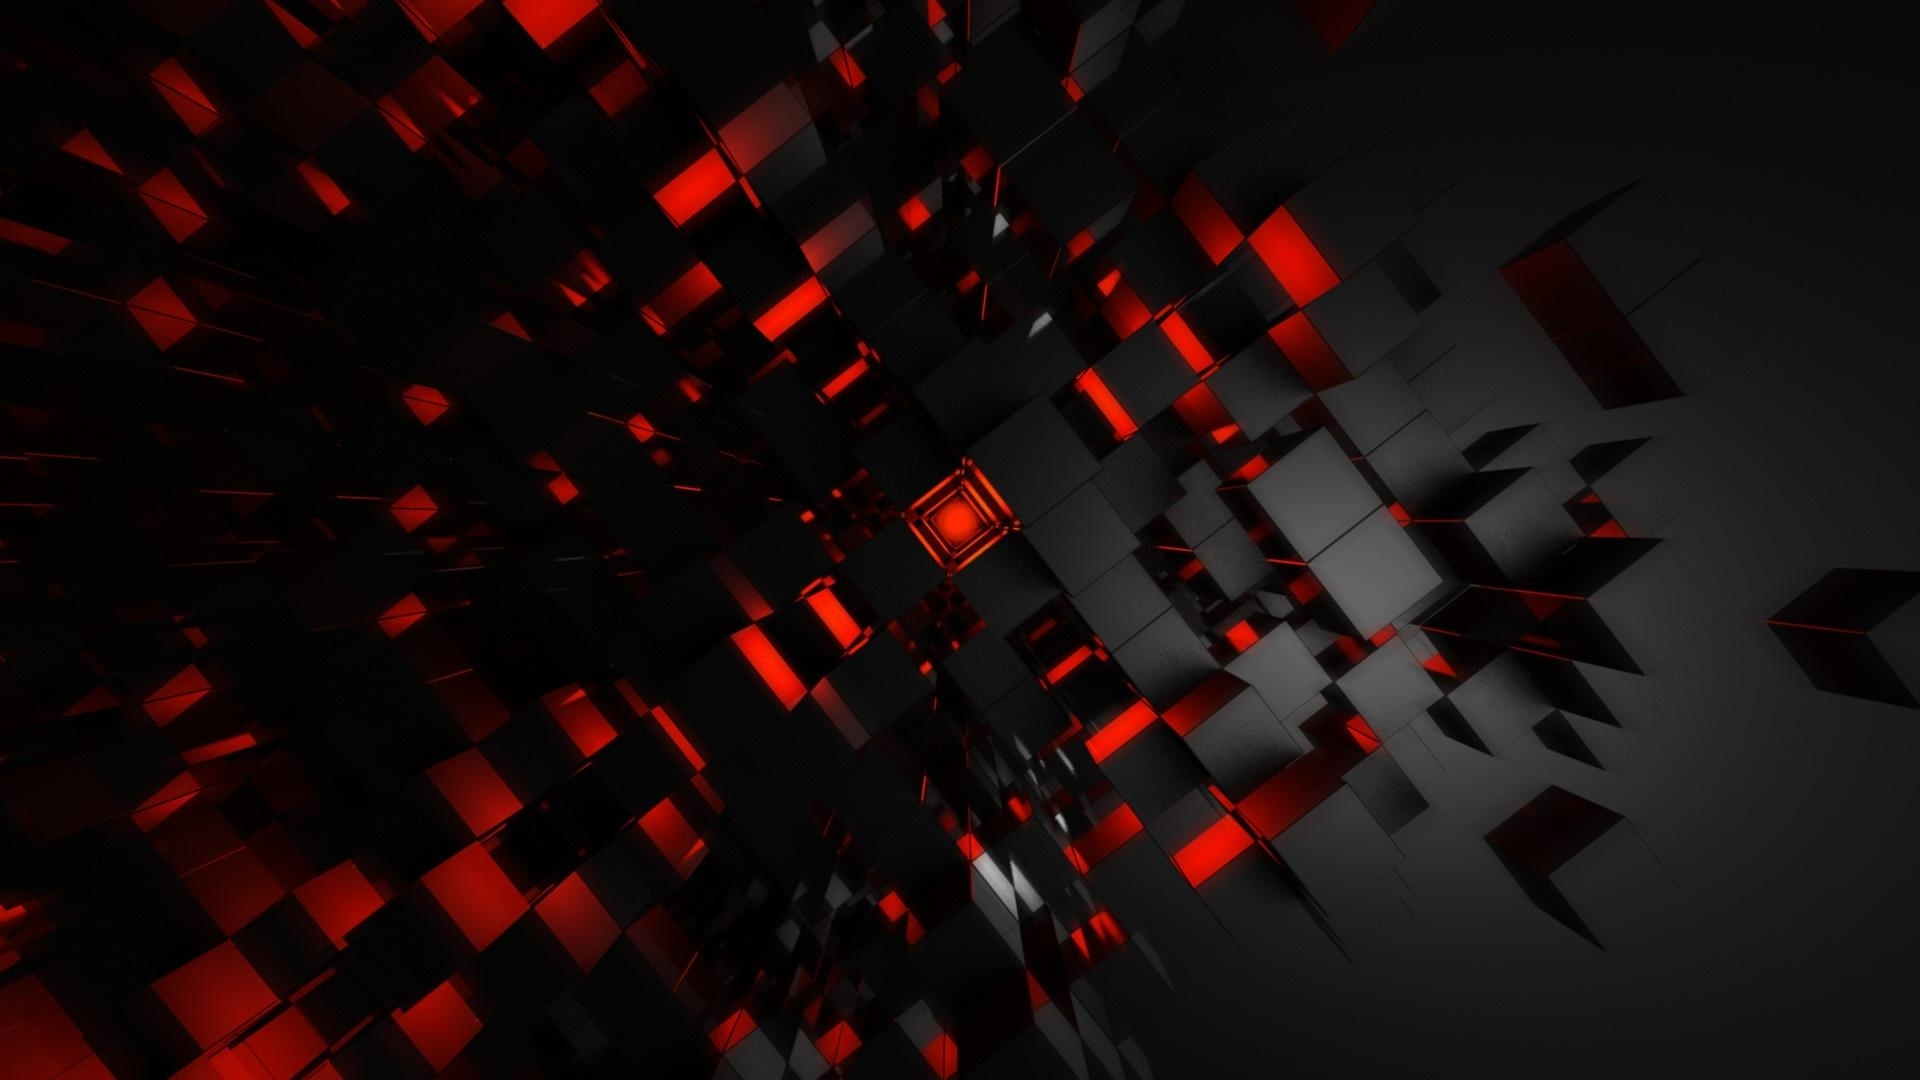 10 Top Abstract Black And Red Wallpaper Full Hd 1920 1080 For Pc